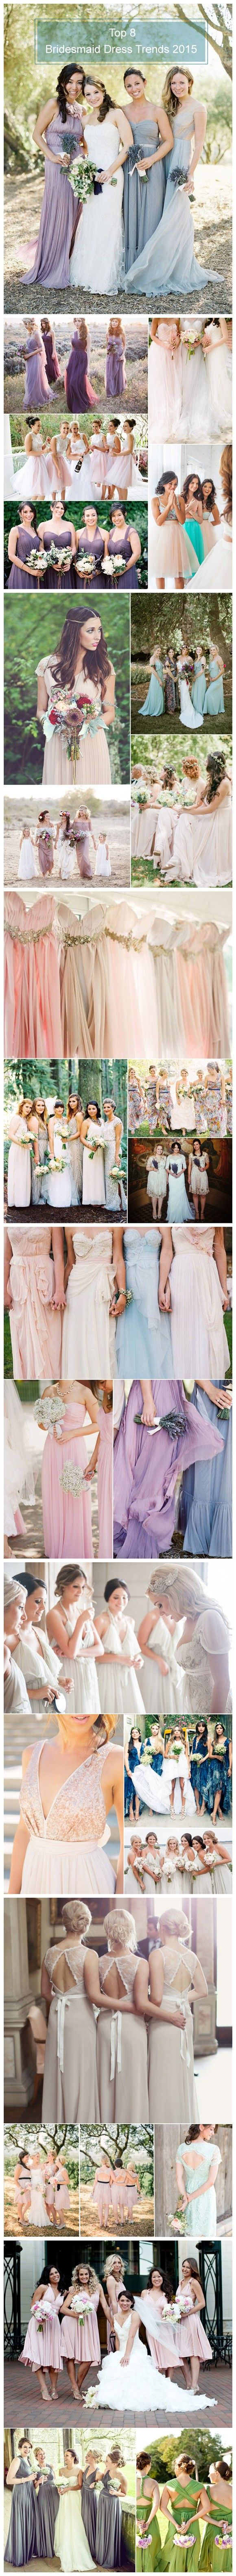 54d48c319b2 Trends   Stylish Features for Bridesmaid Dresses in 2015